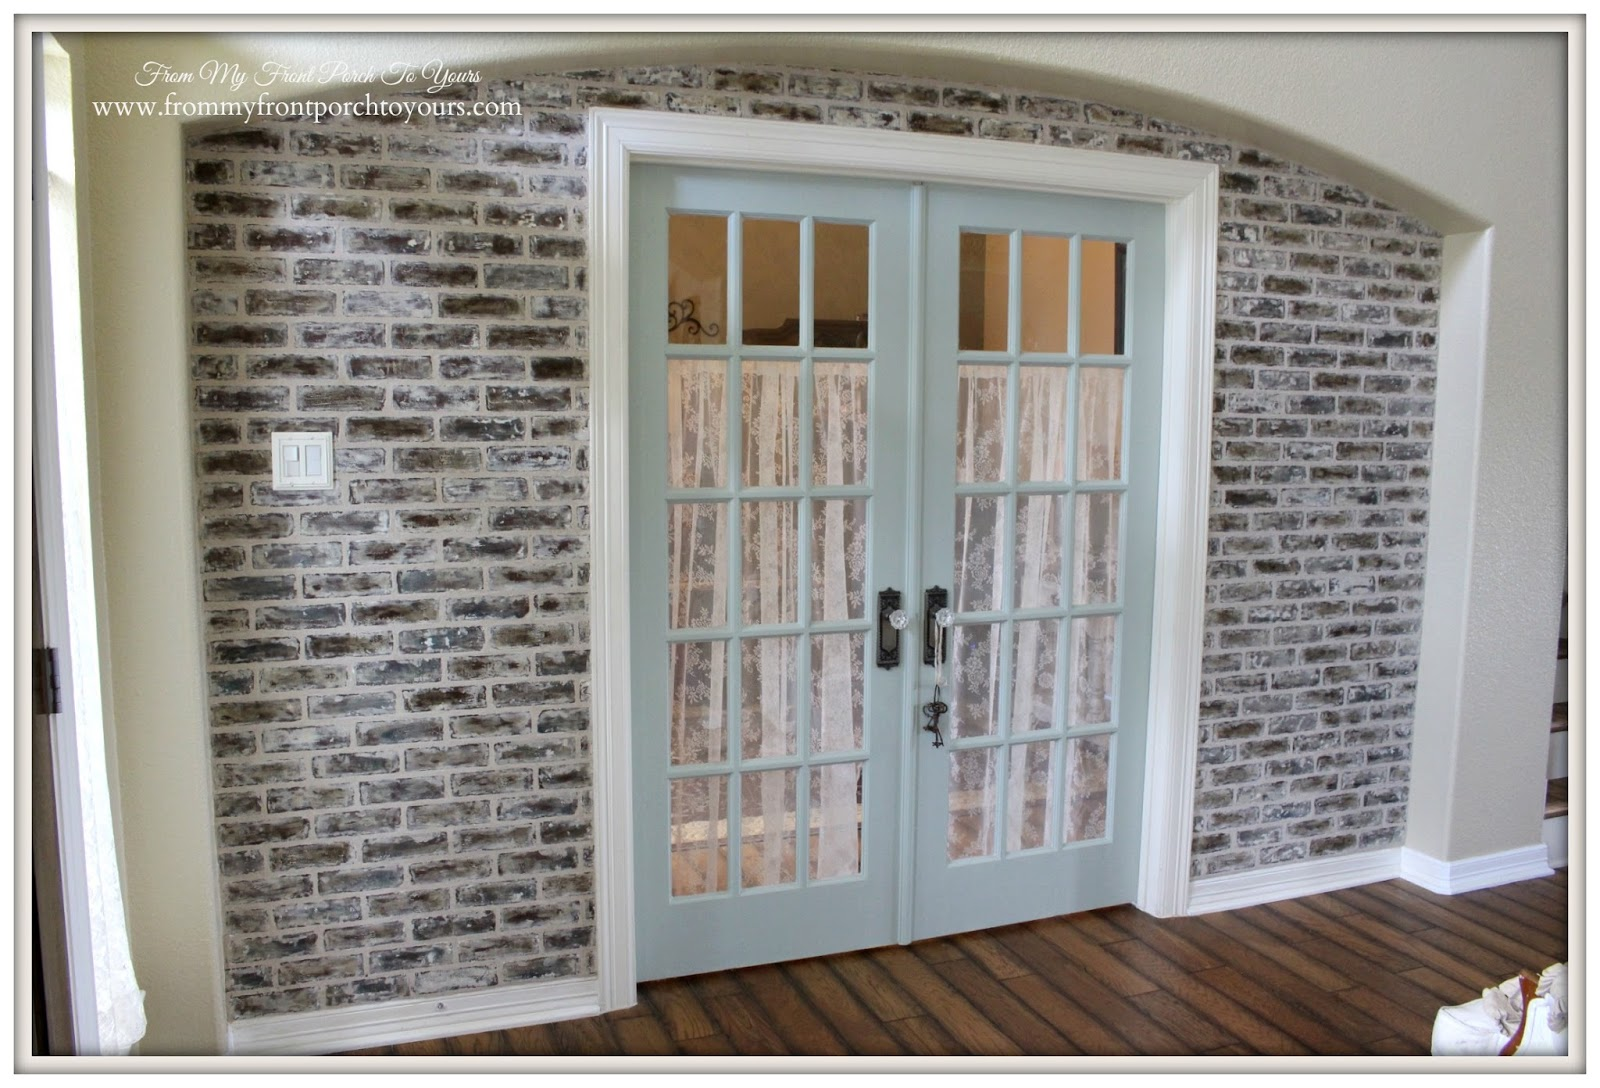 French country home office French Bookcase Diy Brick Wall French Doors Sherwin Willamssea Saltfrench Country Home From My Front Porch To Yours From My Front Porch To Yours French Country Home Office